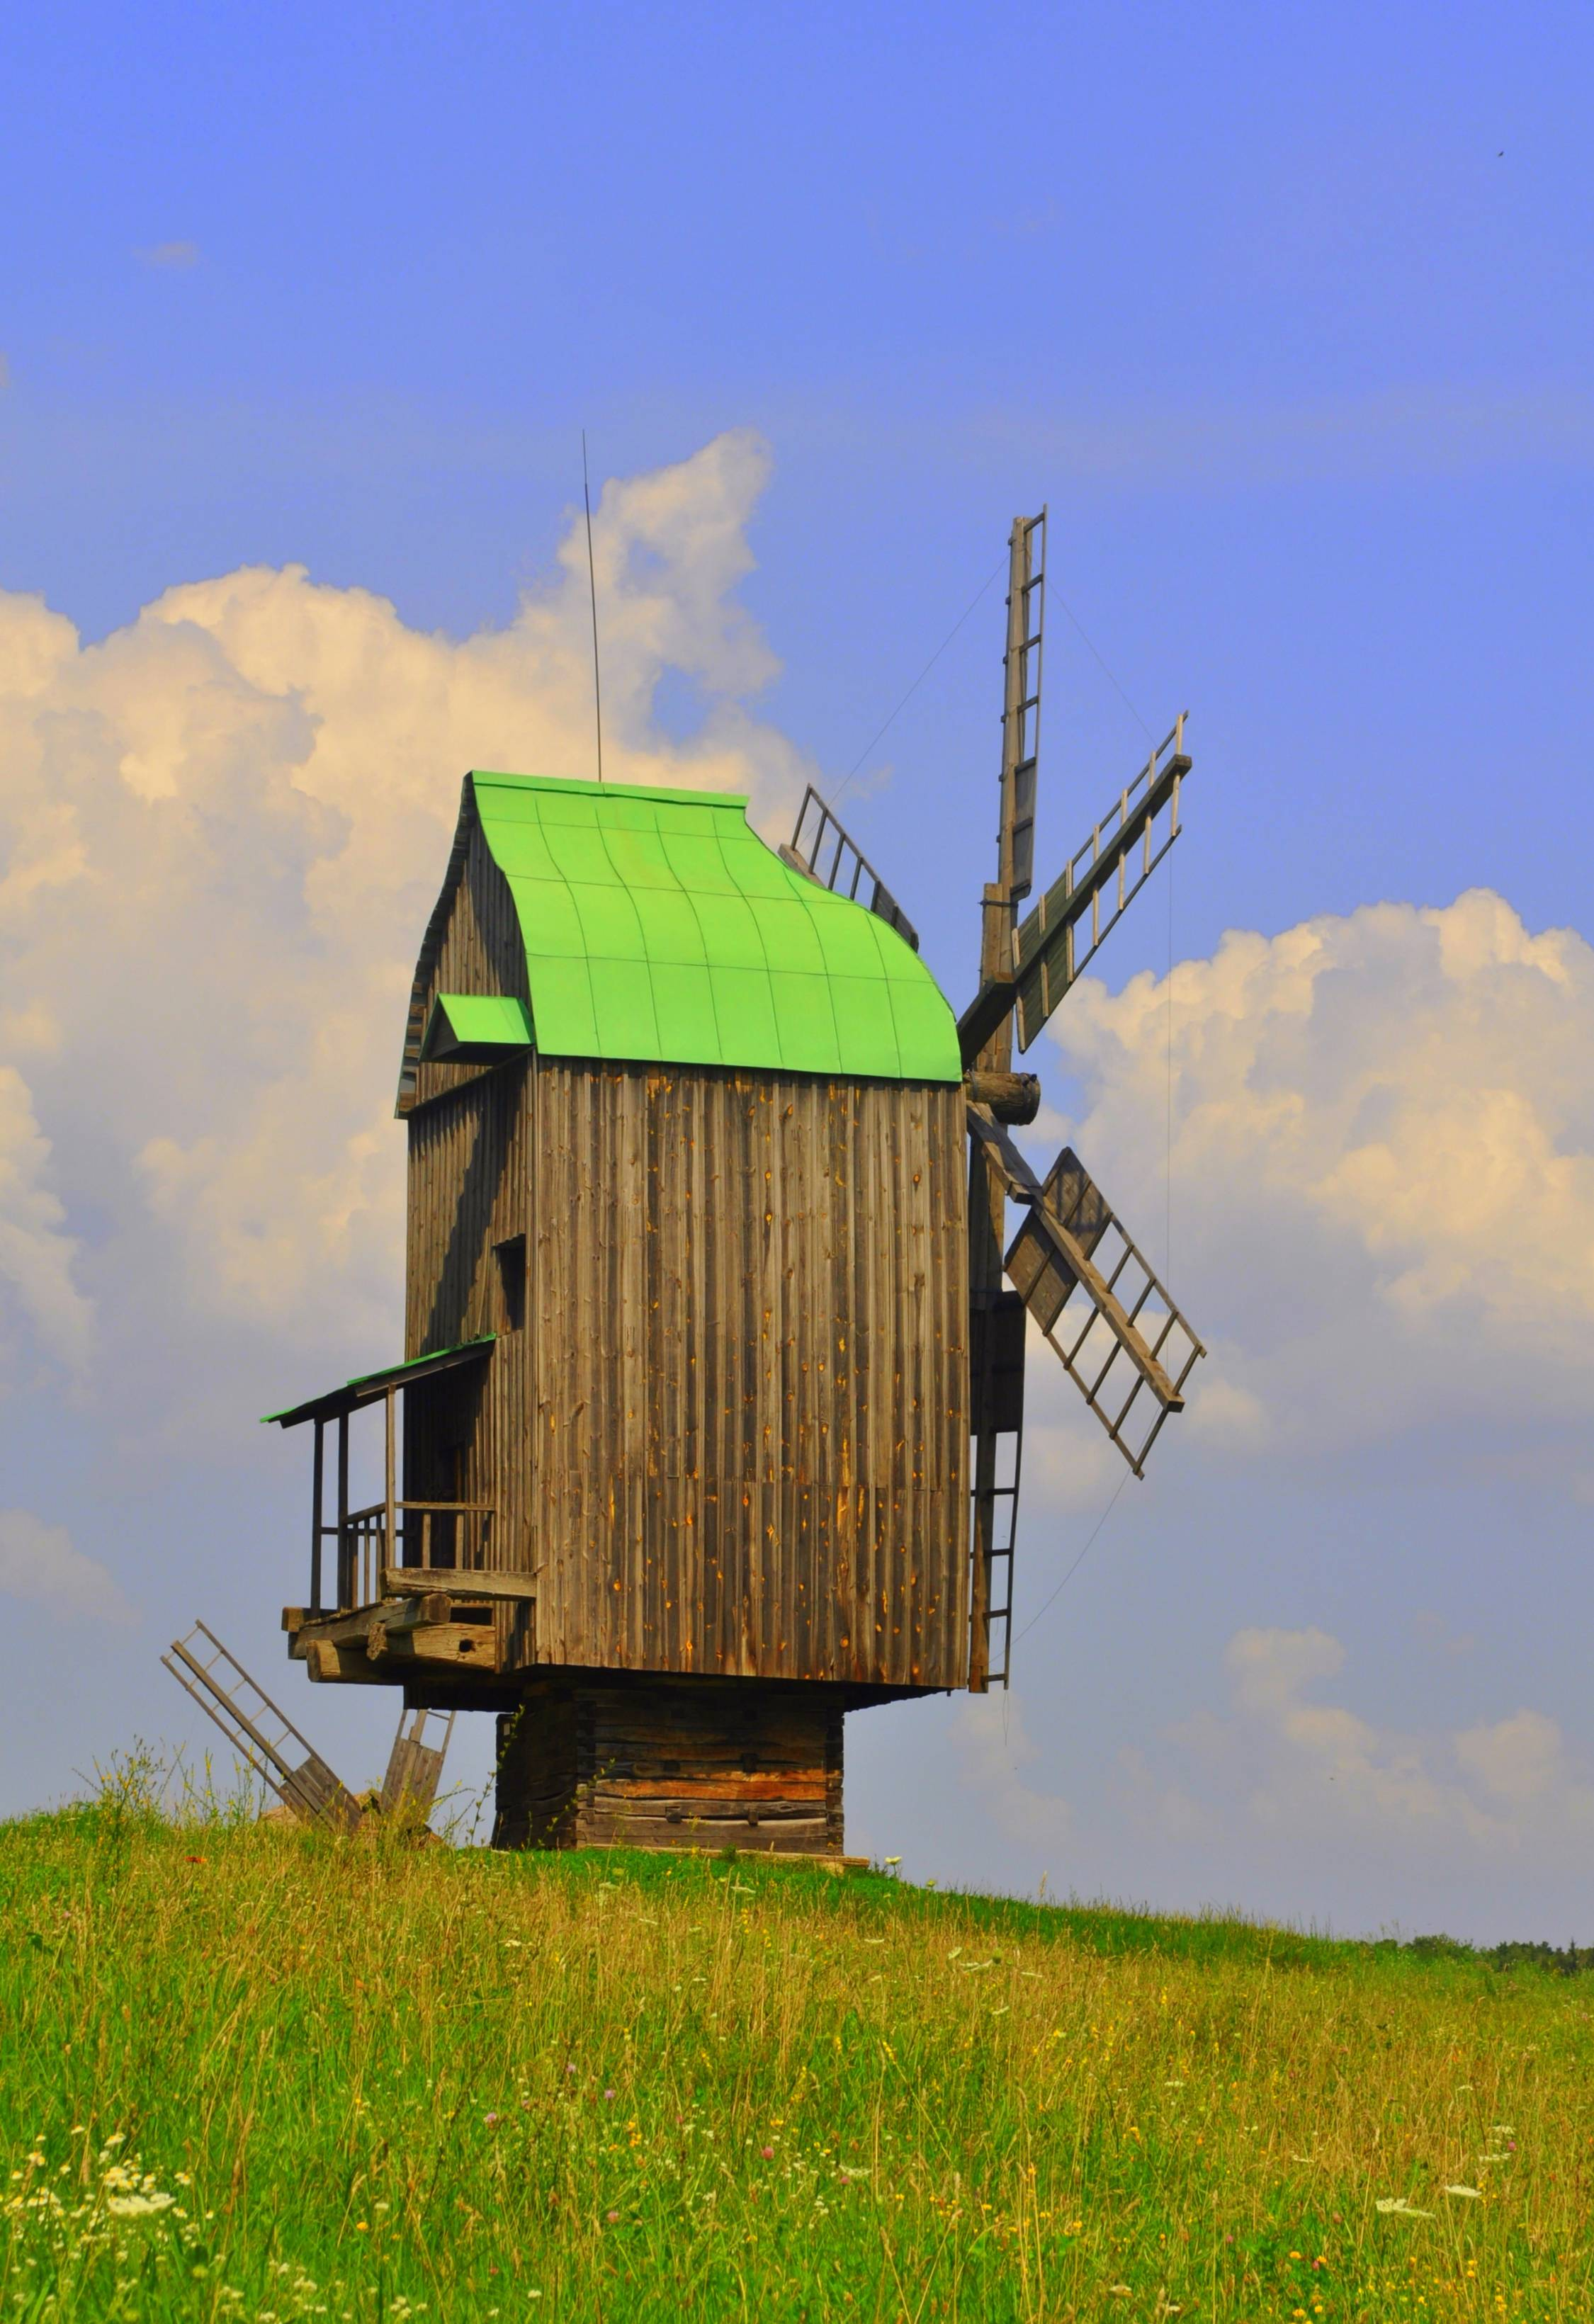 During his time in Ukraine, Peace Corps volunteer Mike Dixon of St. Charles took this photo of the Podolian region windmill at the Pirogov Museum of Folk Architecture and Customs in Kyiv (Kiev).